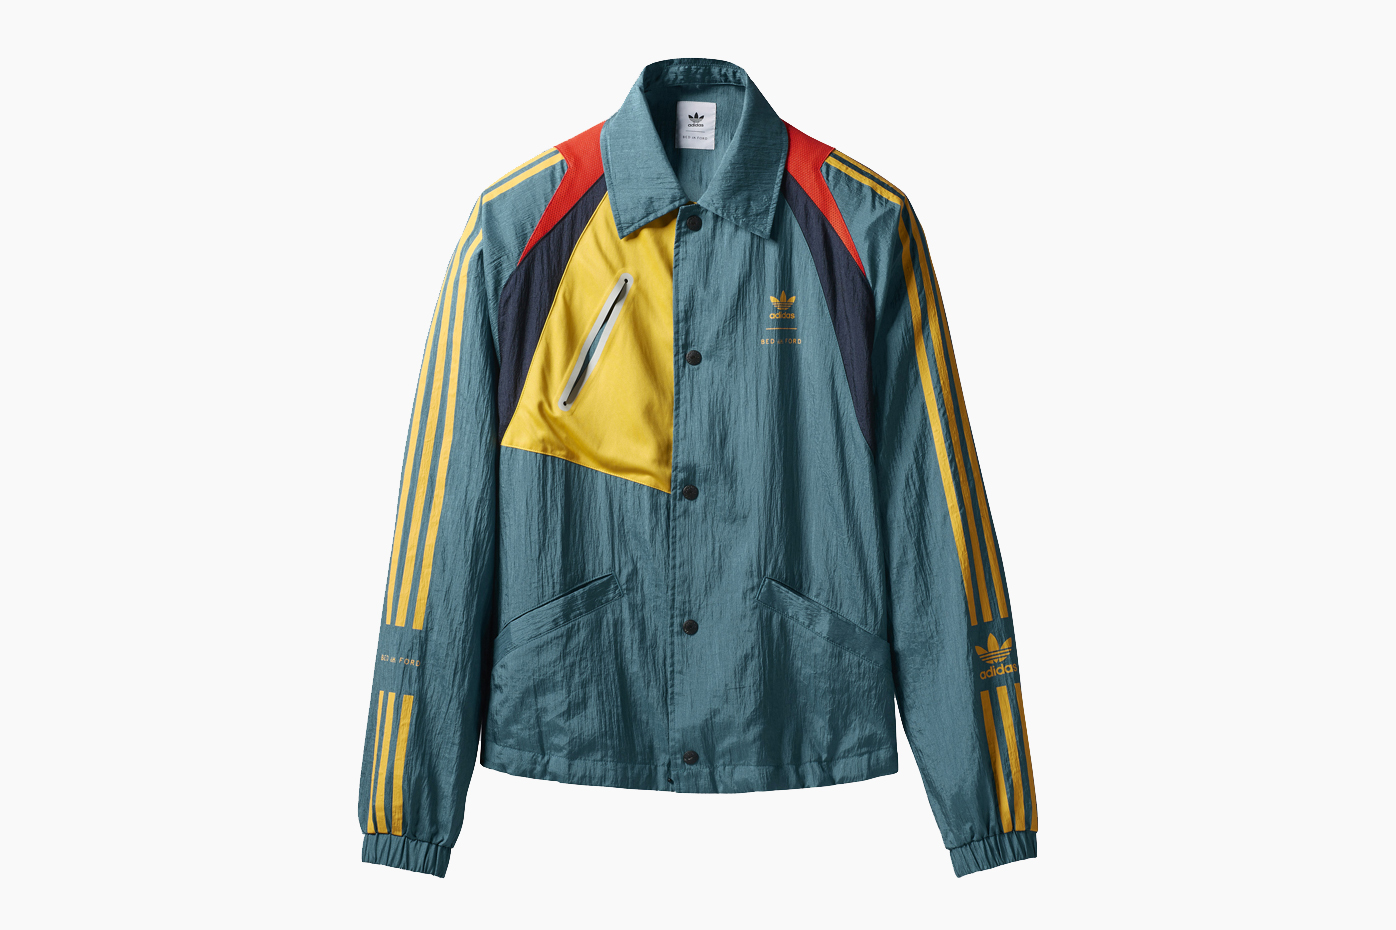 Bed J.W. Ford x adidas Originals SS20 Collection